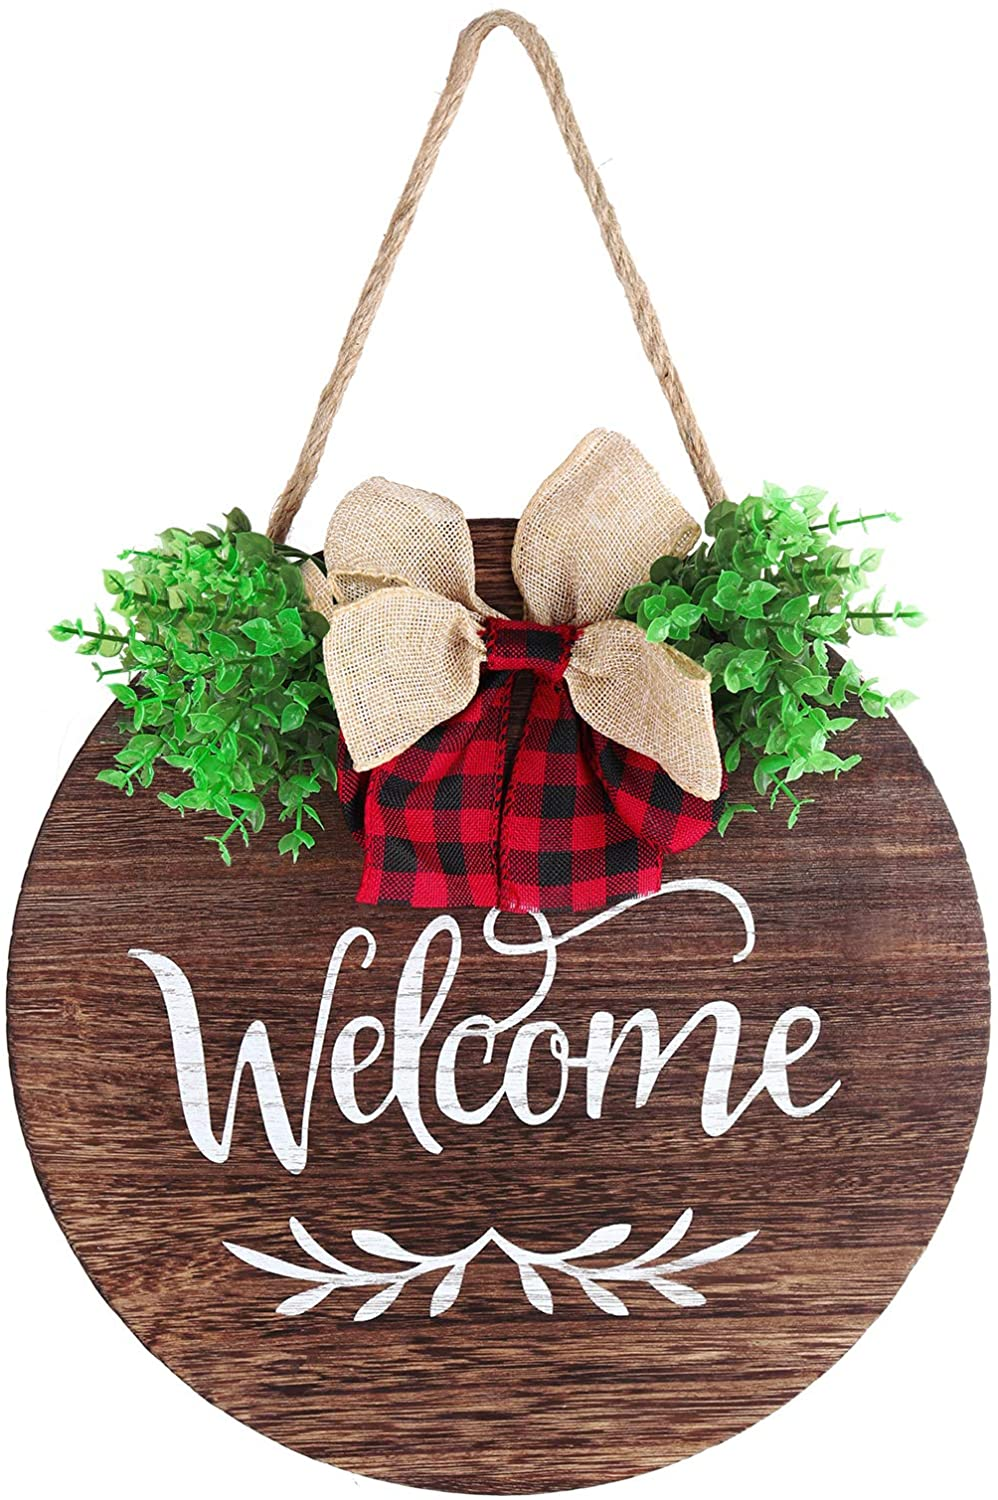 Mocoosy Welcome Sign for Front Door Decor, Round Wood Hanging Sign, Front Door Welcome Wreaths, Rustic Wooden Welcome Signs Door Hangers Farmhouse Porch Home Decorations